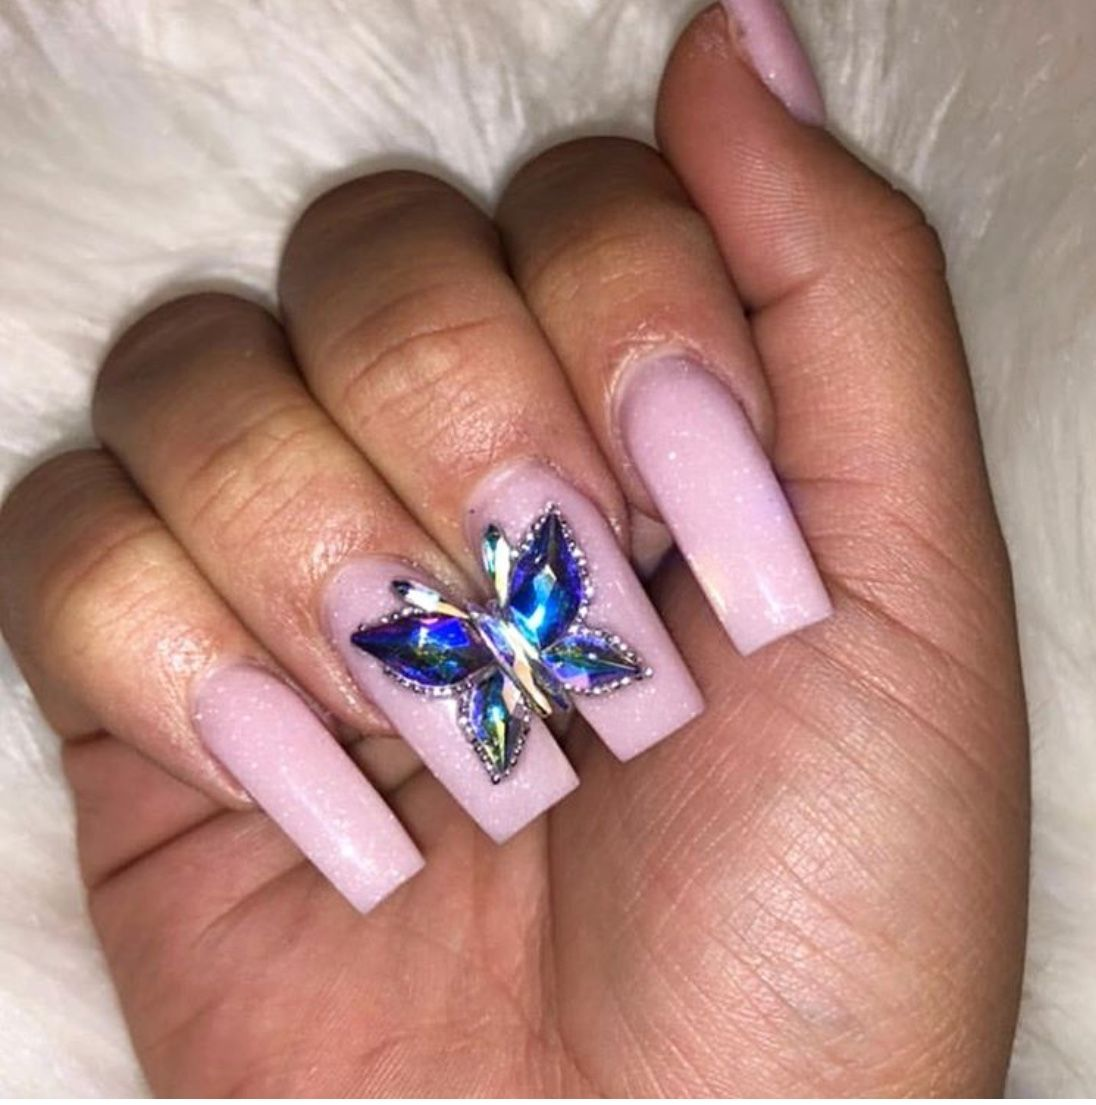 24 Gorgeous Designs For Square Nails - The Glossychic